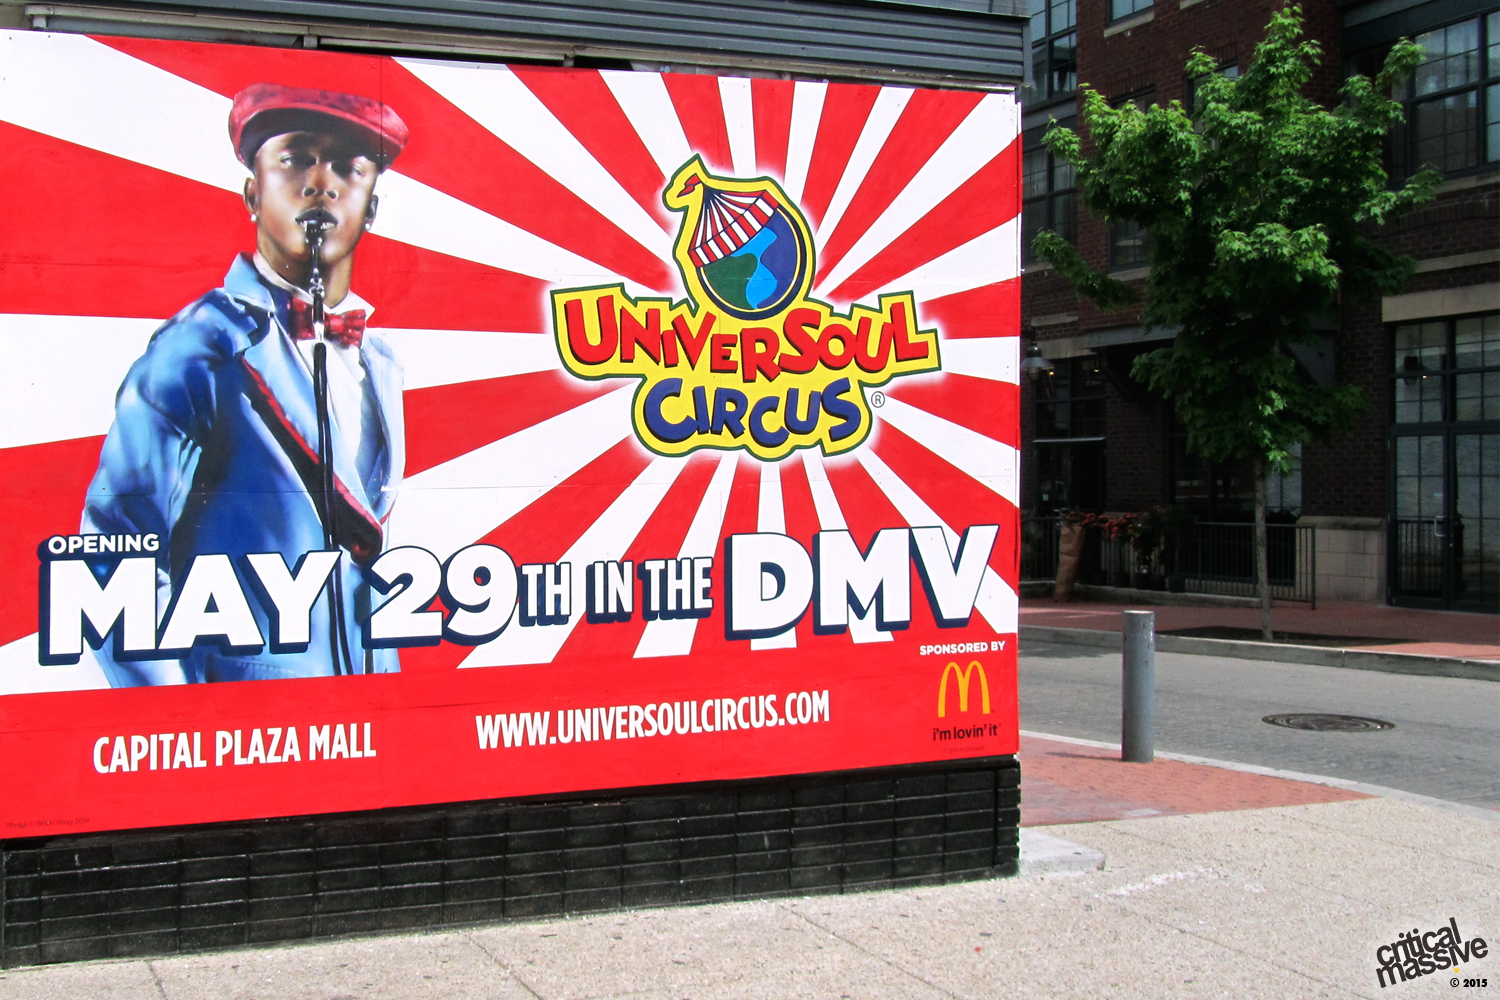 OTHER-UniversoulCircus-1.jpg